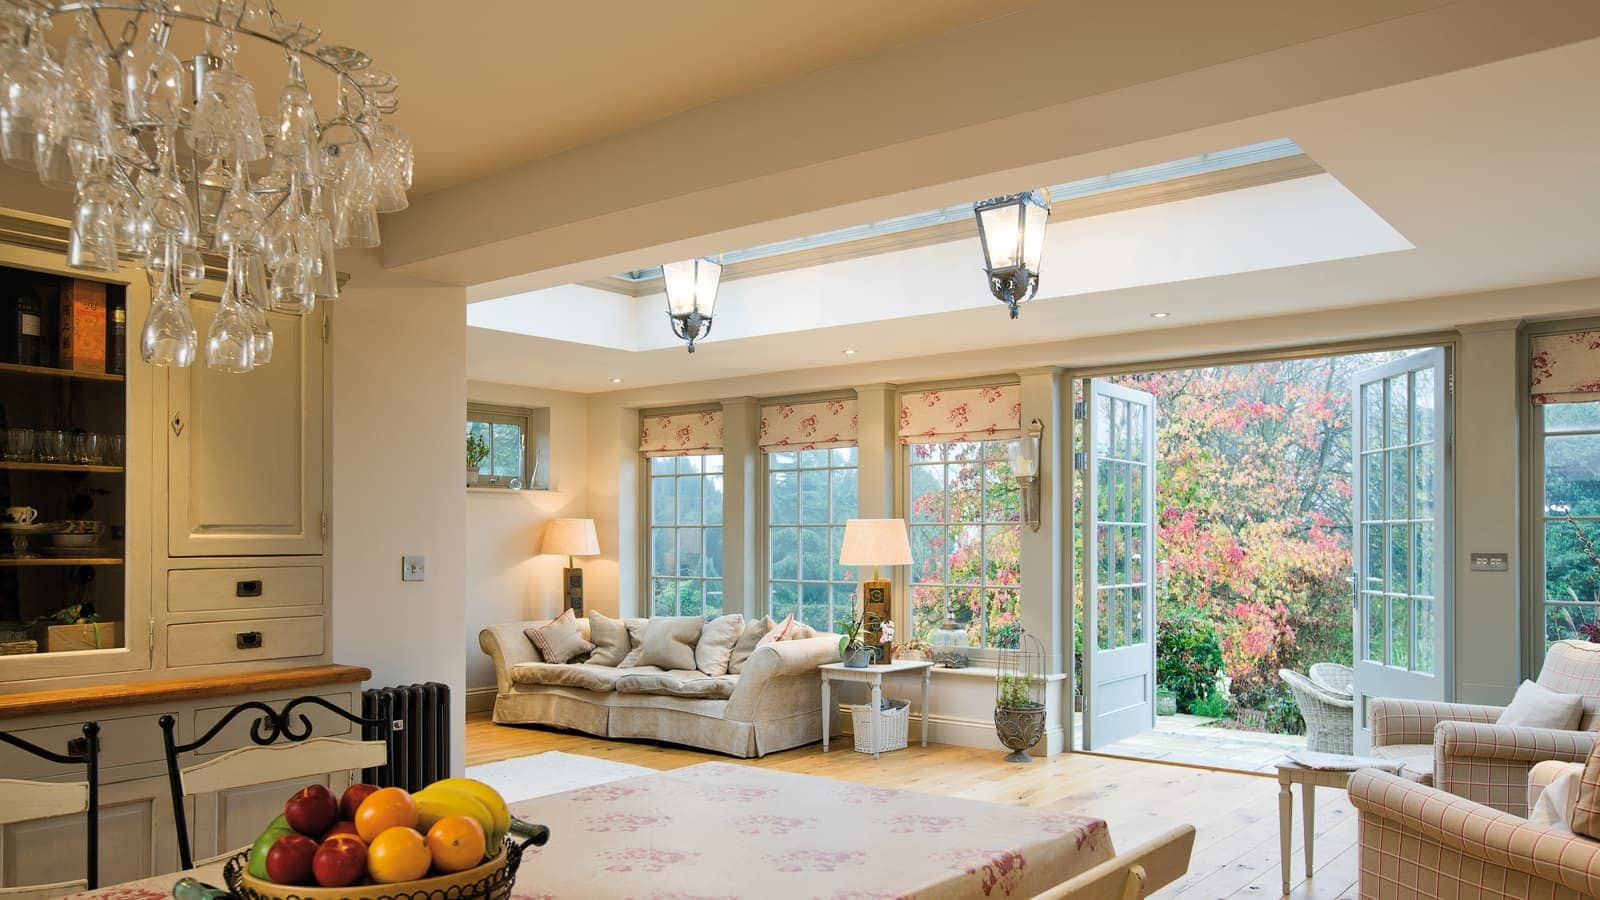 Fantastic orangery addition creating a link between rooms